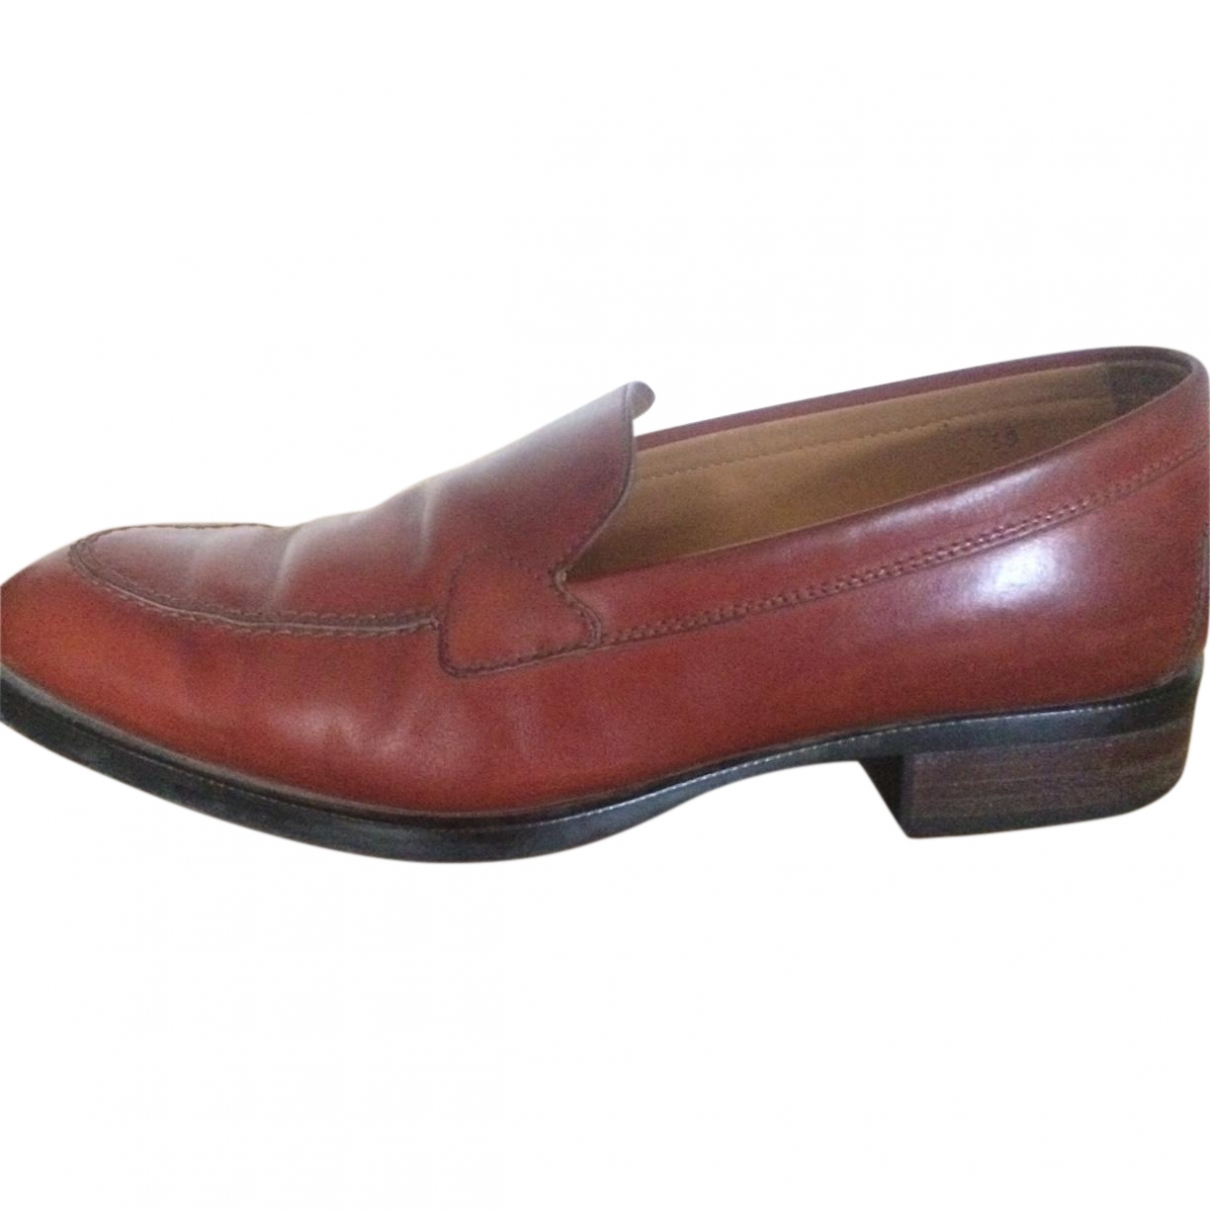 Tod's \N Brown Leather Flats for Women 39 EU